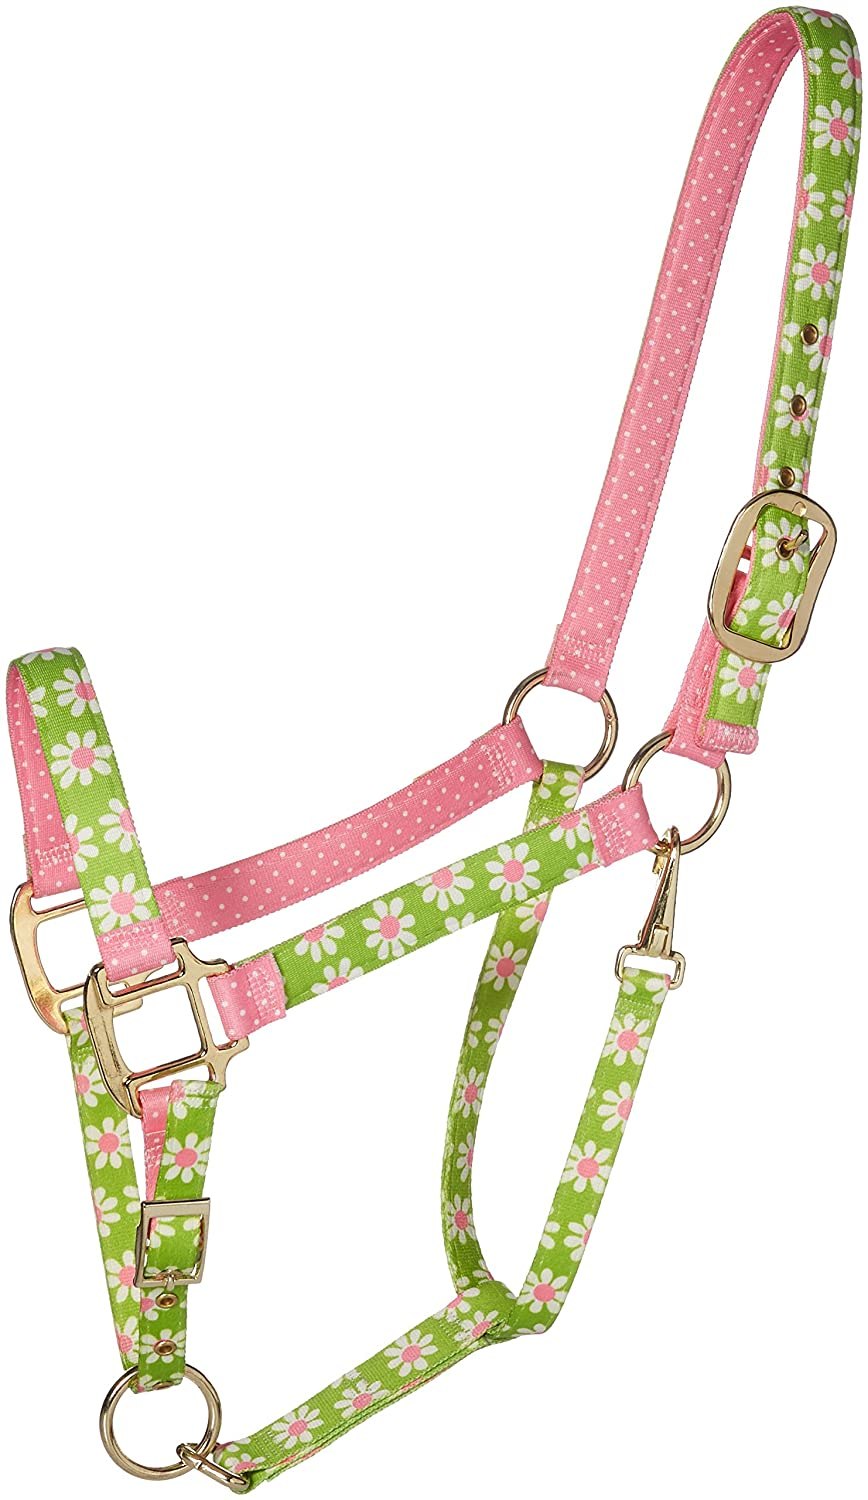 Red Haute Horse GD1203 A High Fashion Horse Horse Halter, Green Daisy